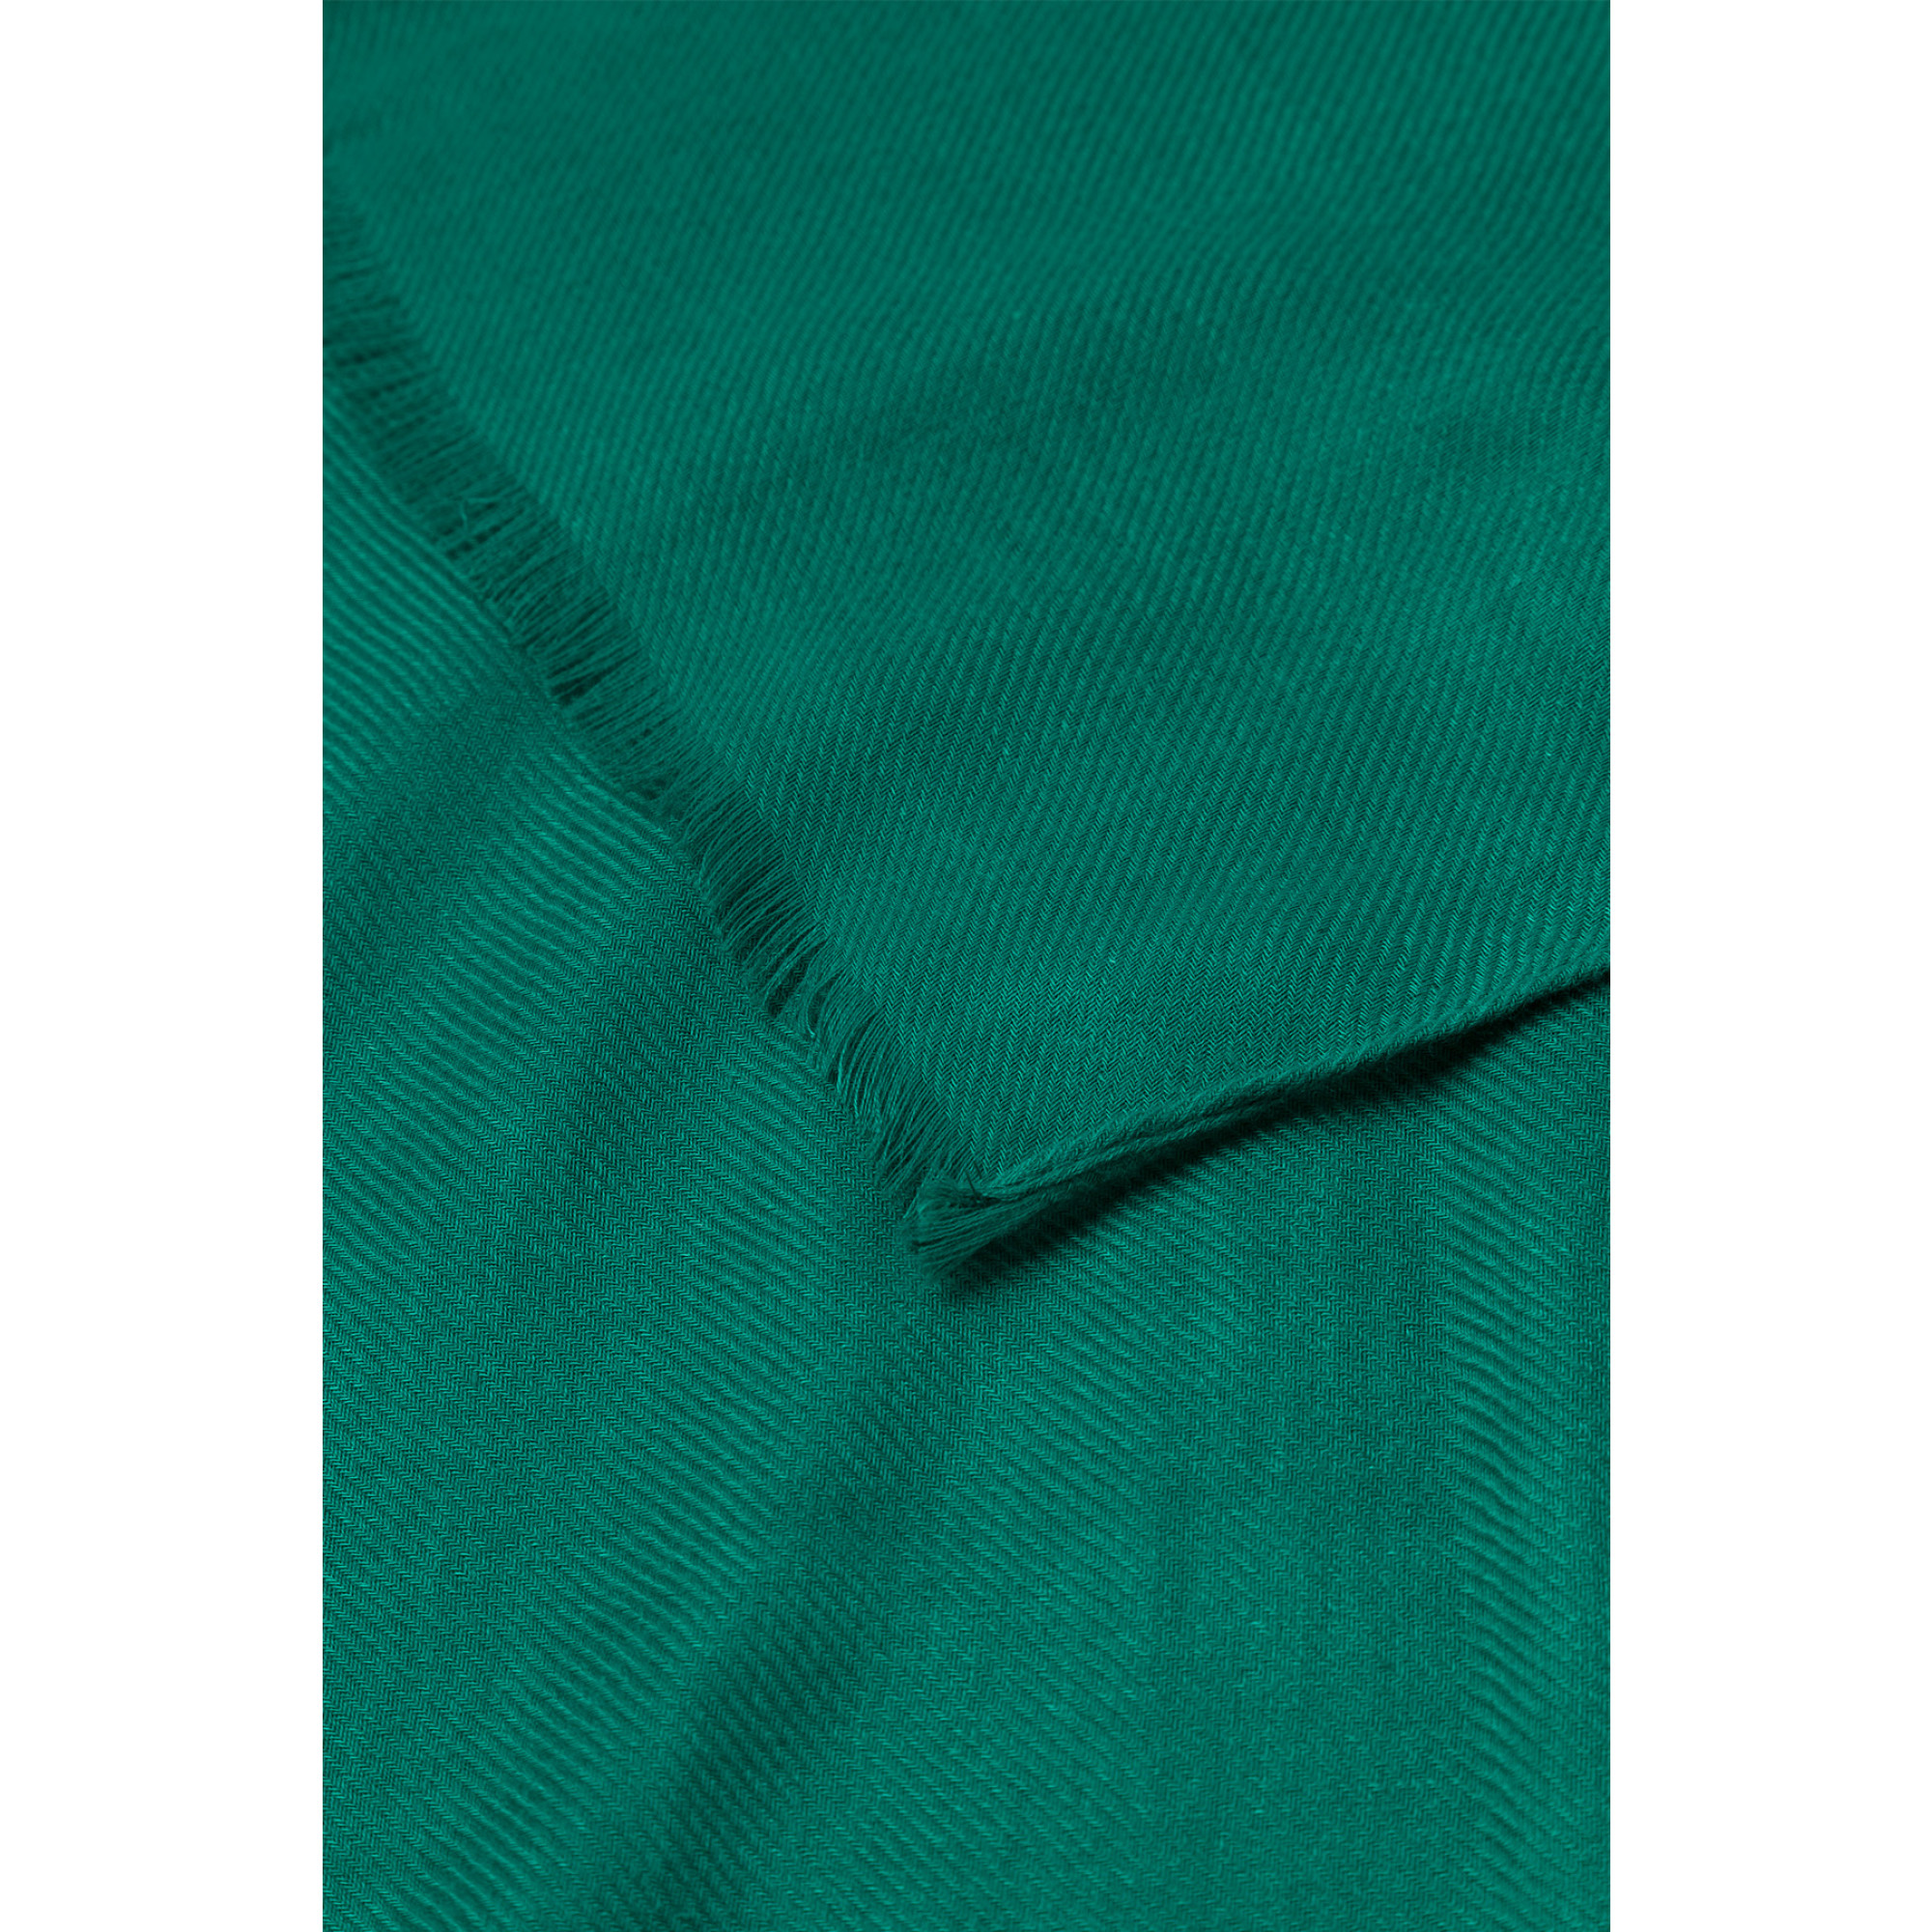 Schal, emerald green 91099036-0655 2